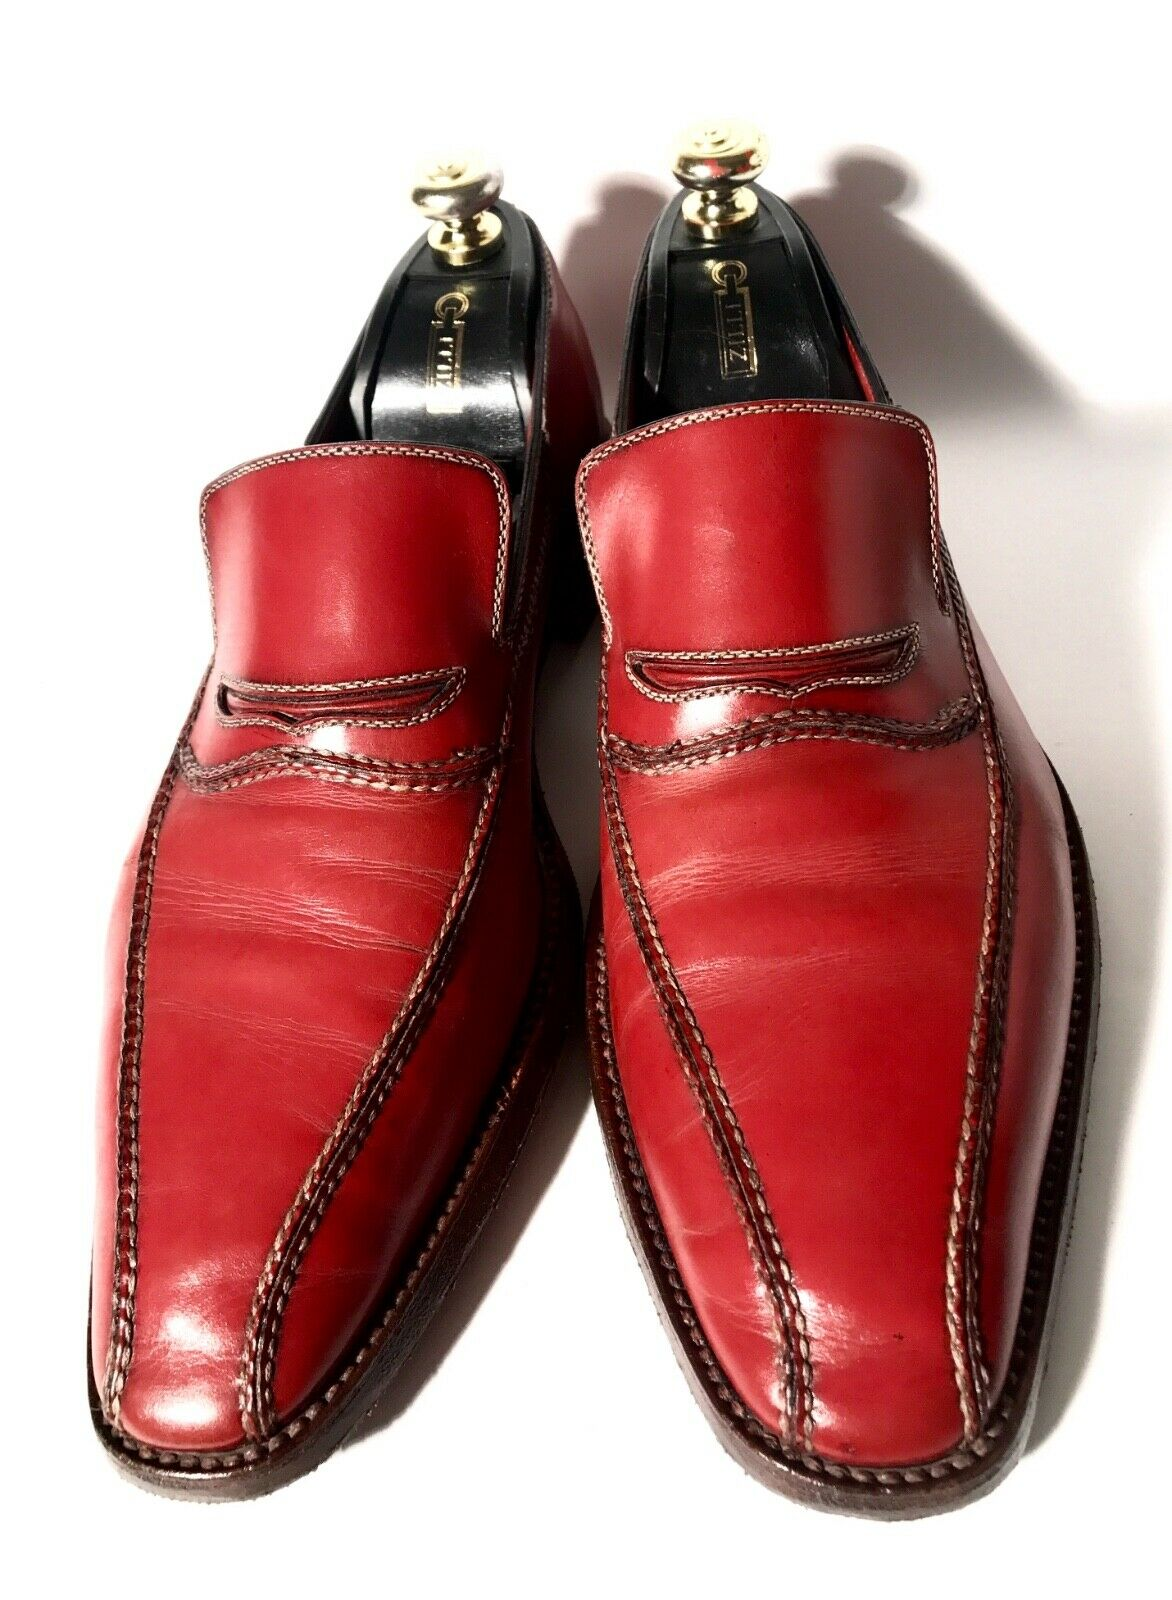 2900 Amadeo Testoni Rouge-Brun Chaussures Cuir Taille 44, UK-10, US-11